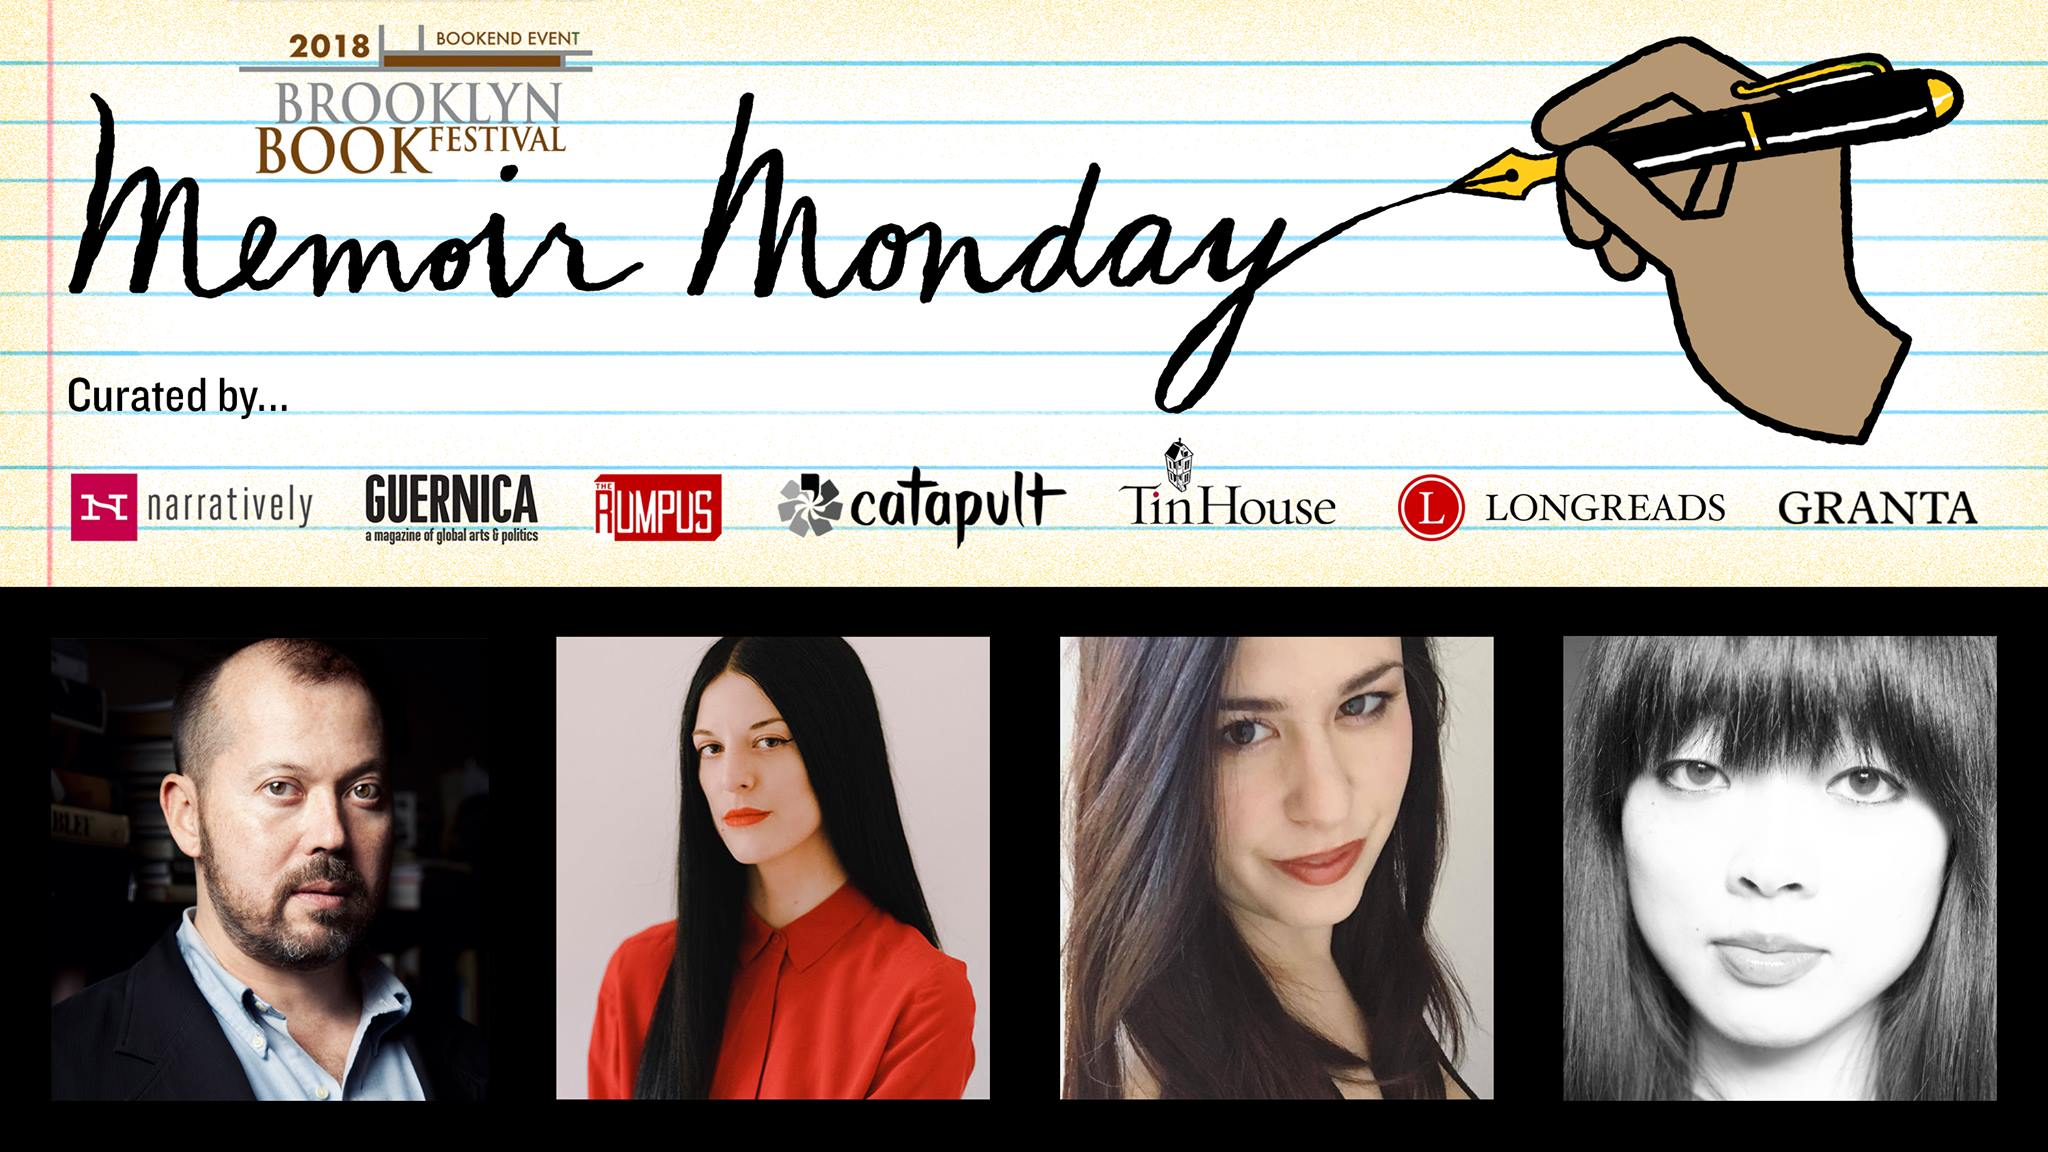 BROOKLYN BOOK FEST BOOKEND EVENT: Memoir Monday: Featuring Chelsea Hodson, Tracy O'Neill, & Lisa Marie Basile — Hosted by Lilly Dancyger